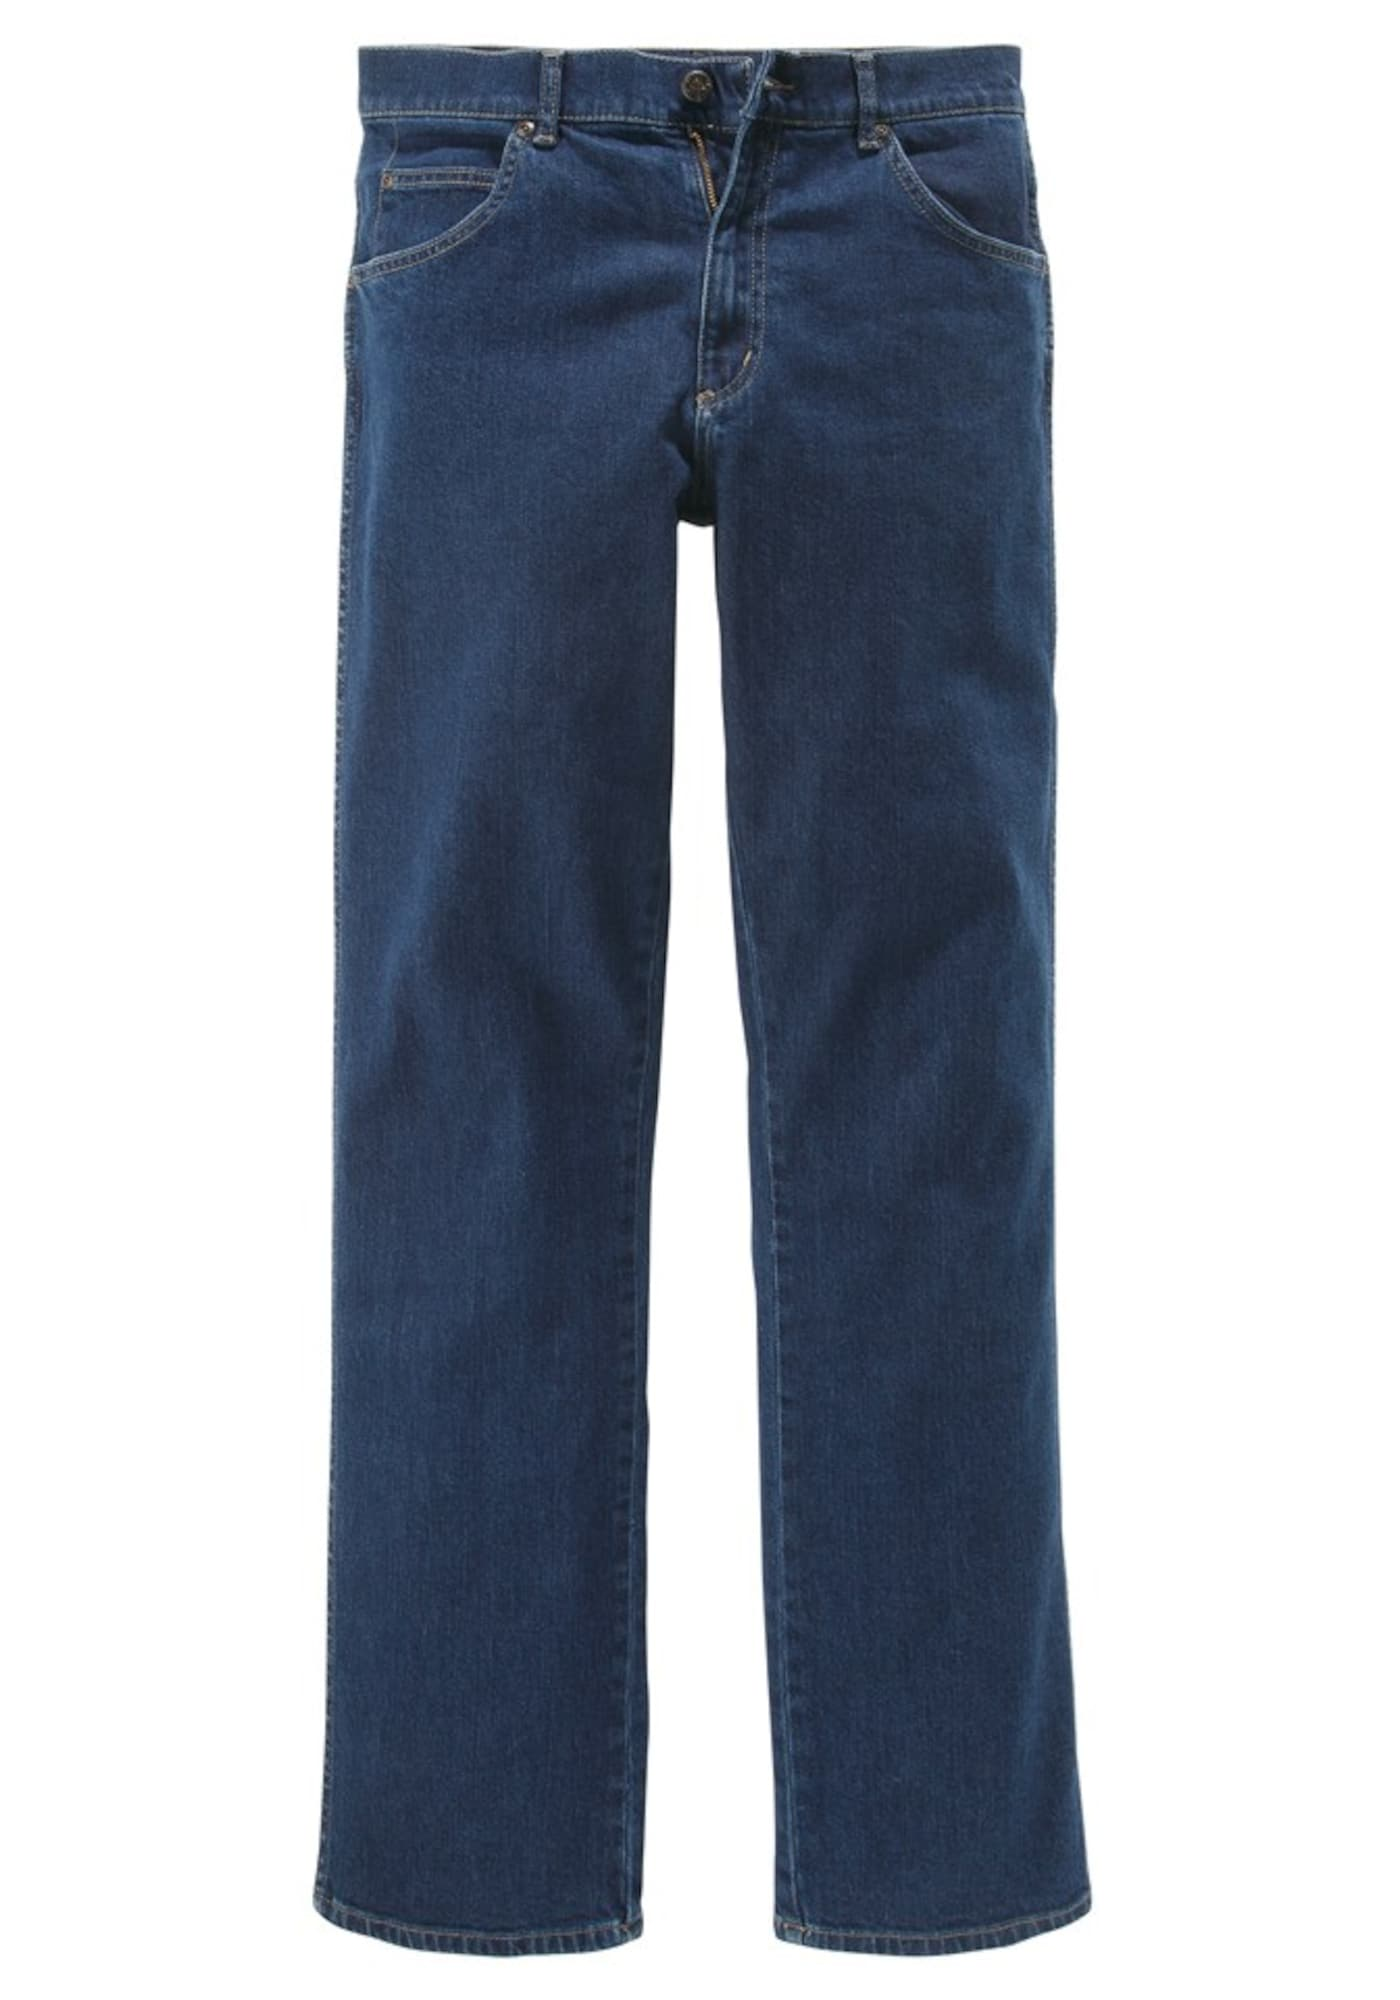 WRANGLER Heren Jeans Durable blauw denim